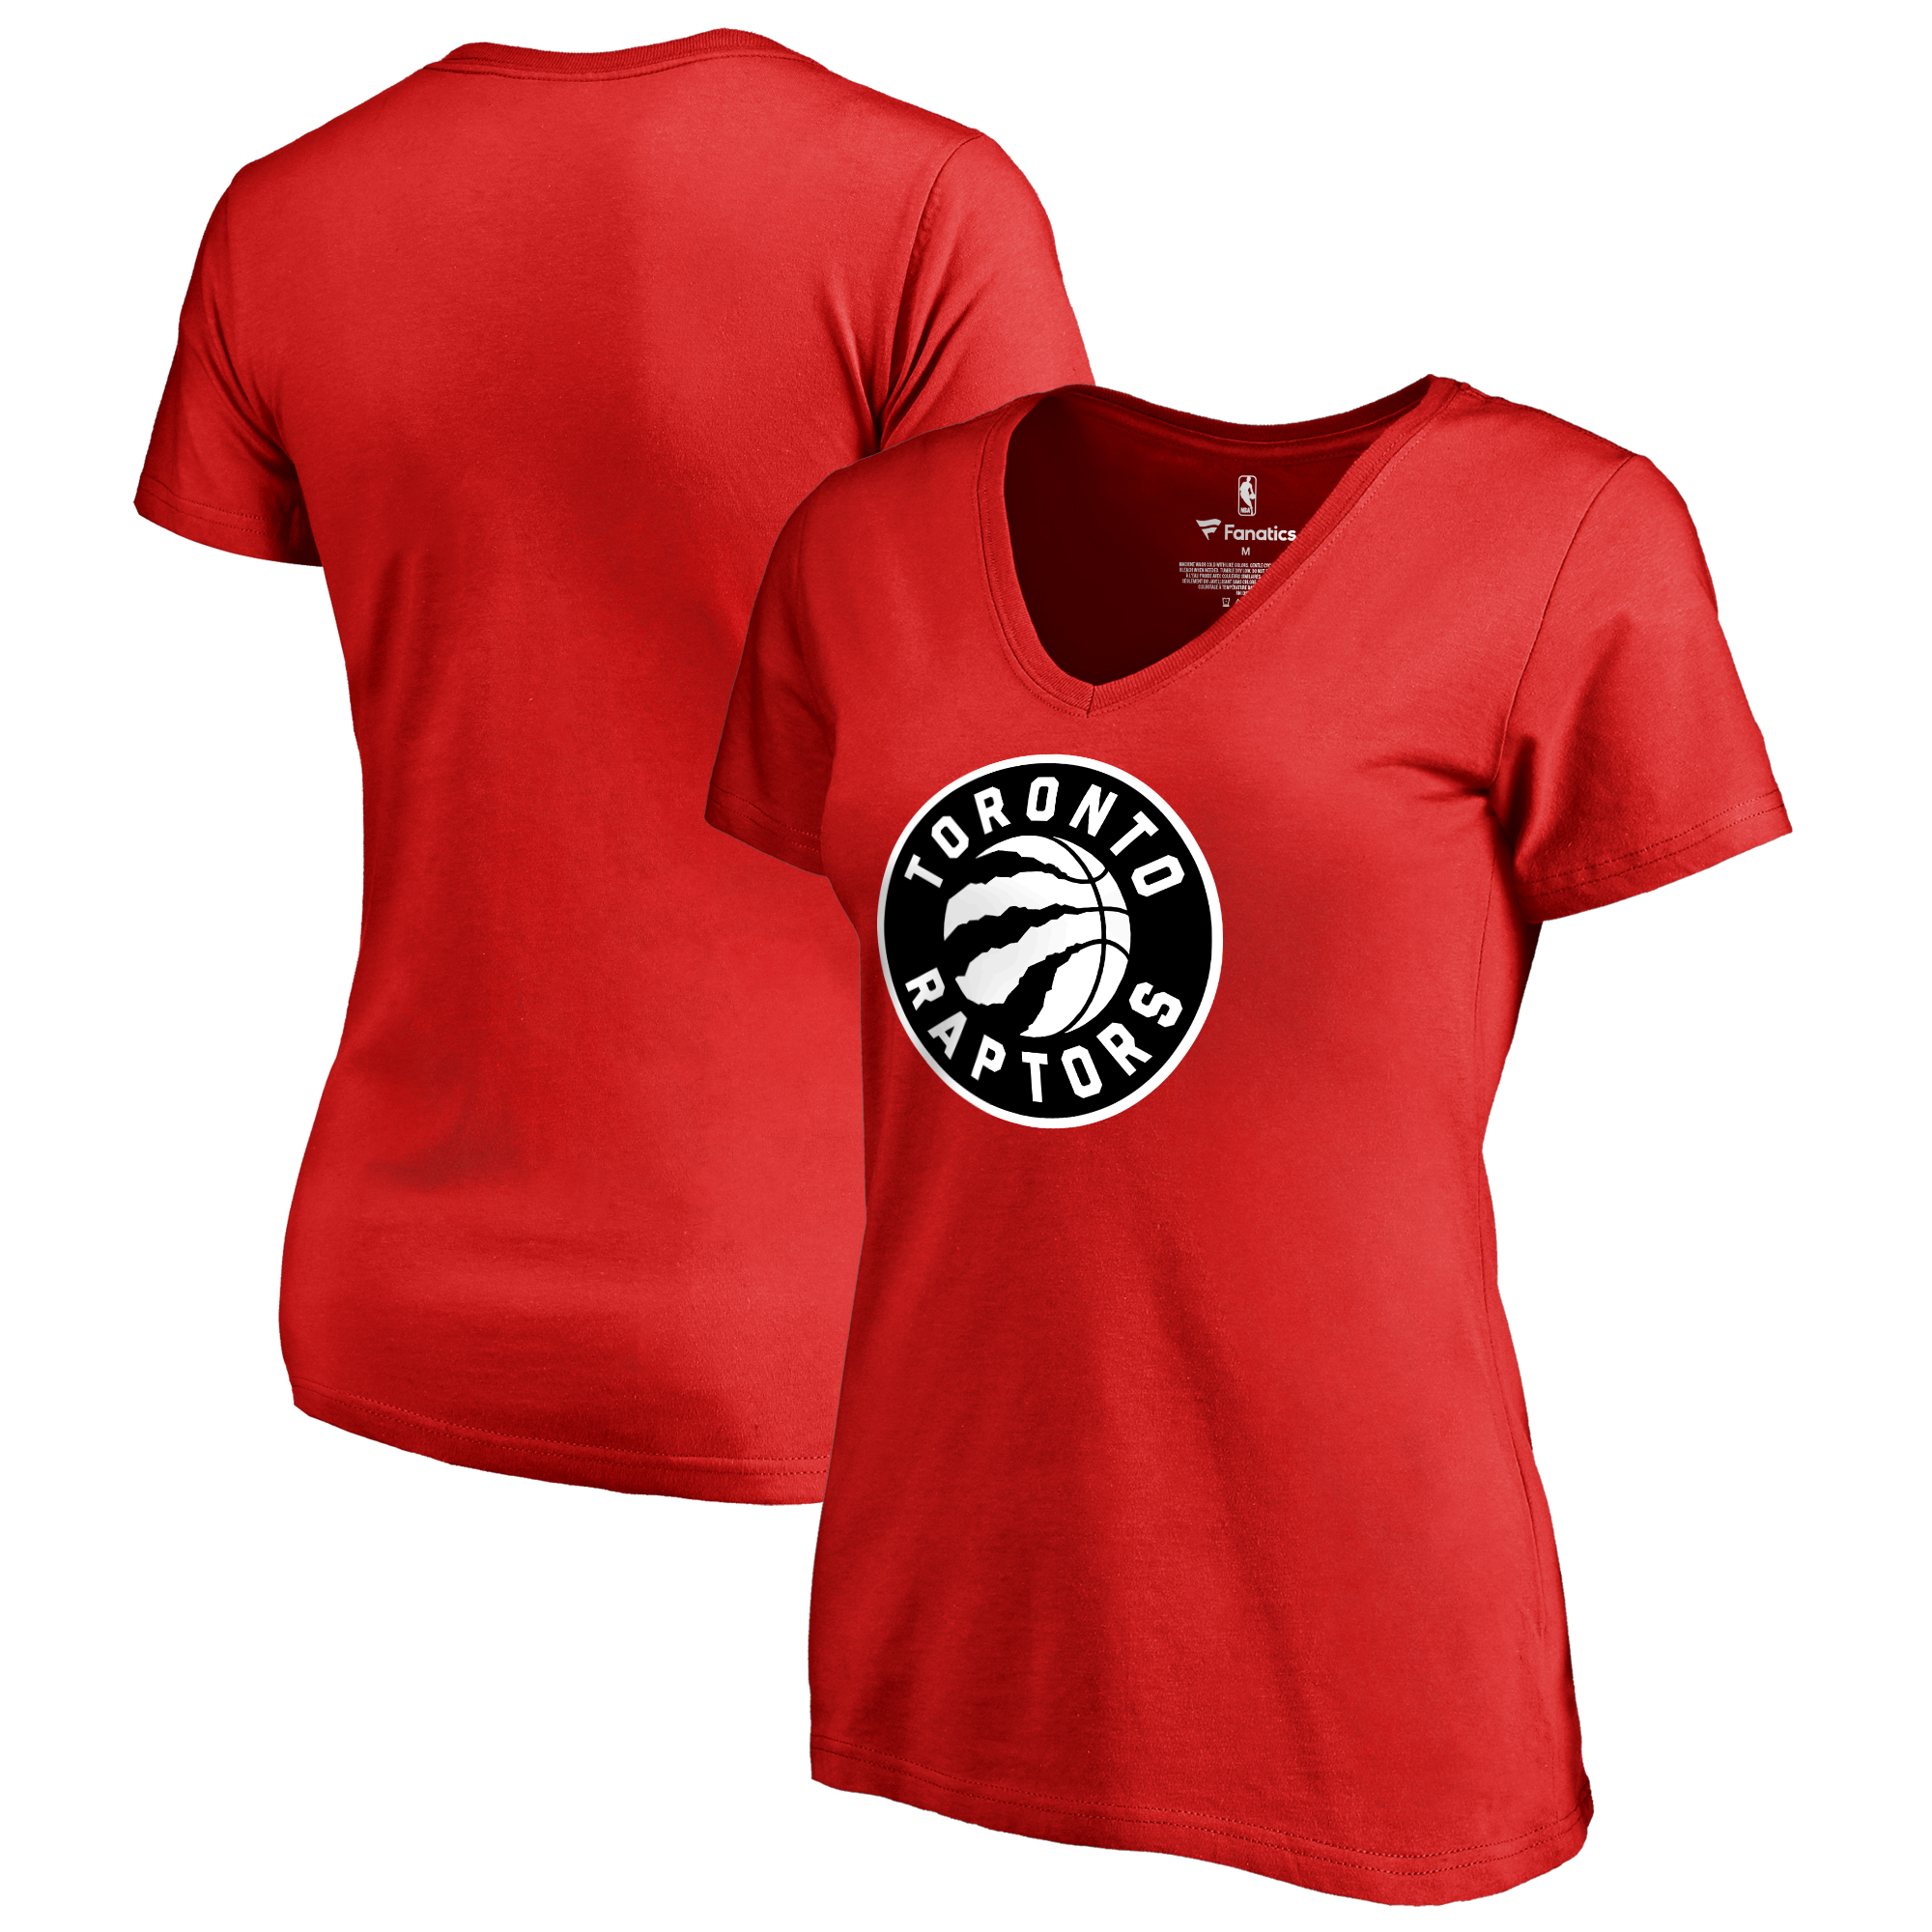 Toronto Raptors Fanatics Branded Women's Plus Size Primary Logo V-Neck T-Shirt - Red